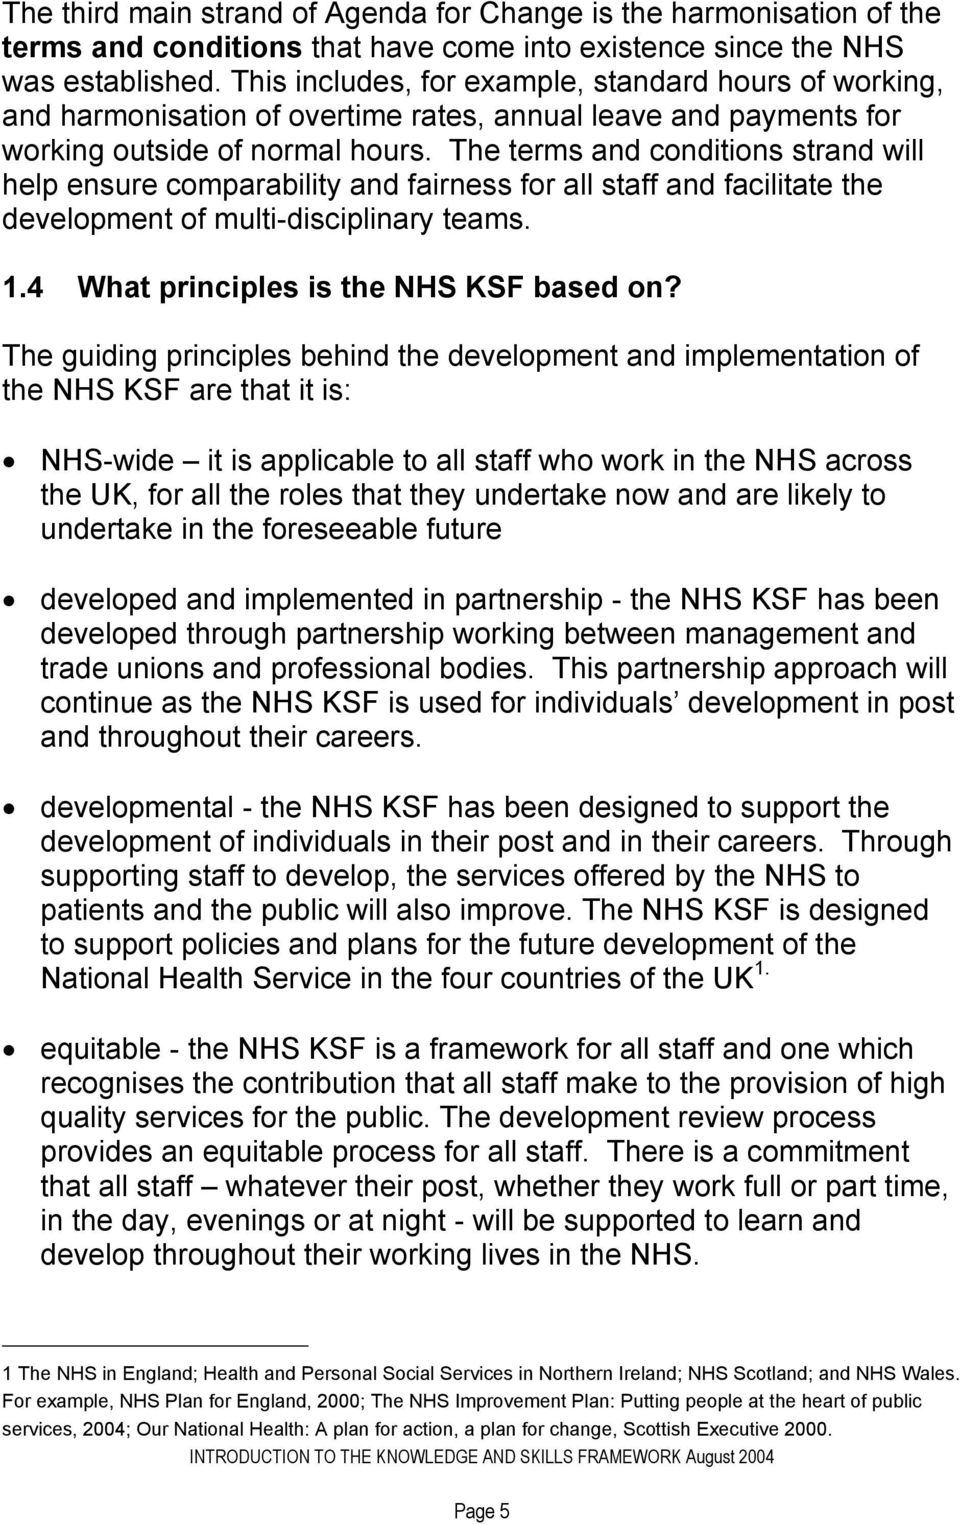 The terms and conditions strand will help ensure comparability and fairness for all staff and facilitate the development of multi-disciplinary teams. 1.4 What principles is the NHS KSF based on?